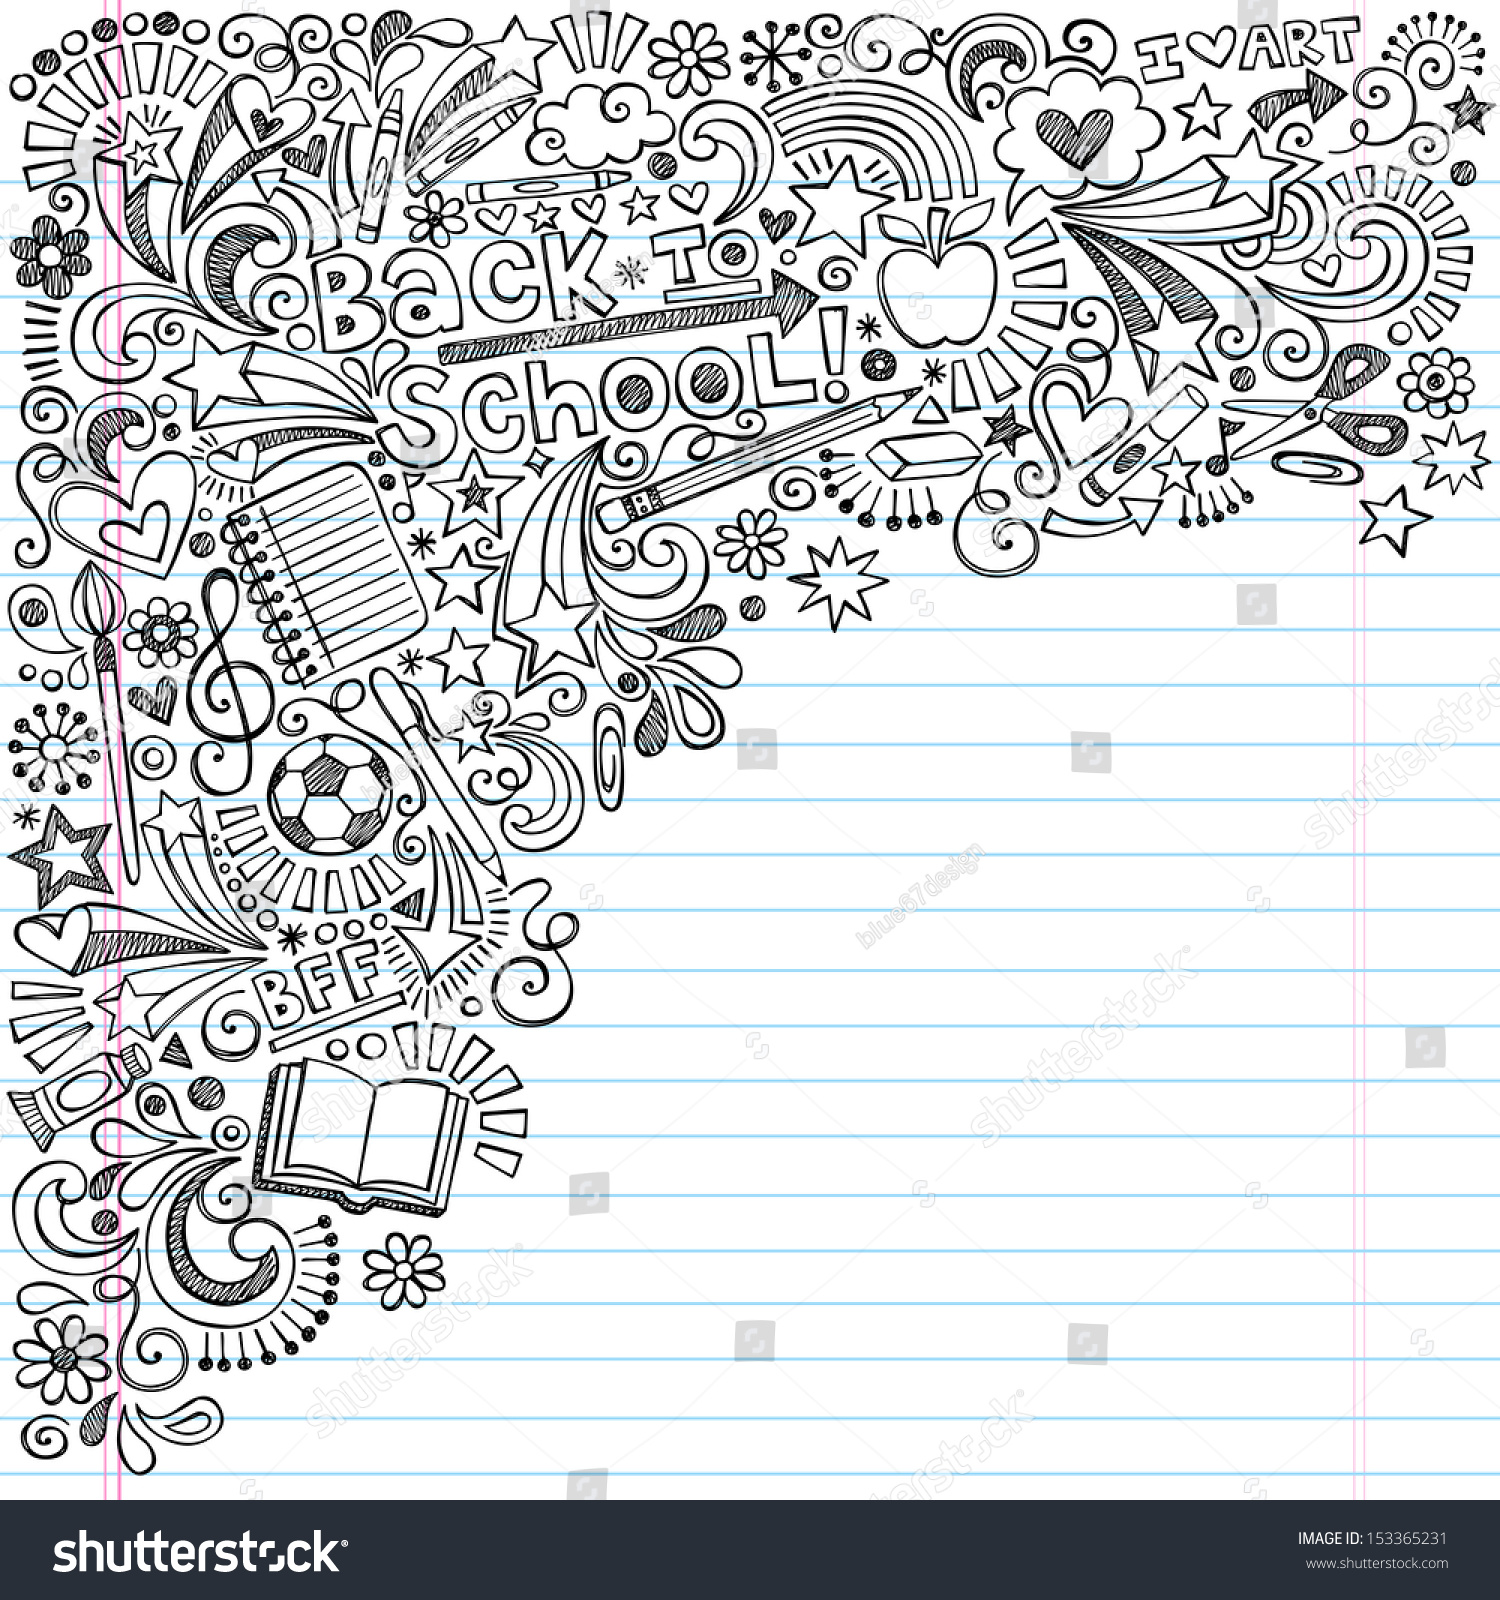 Inky Back To School Notebook Doodles With Apple Soccer Ball Art Supplies And Book